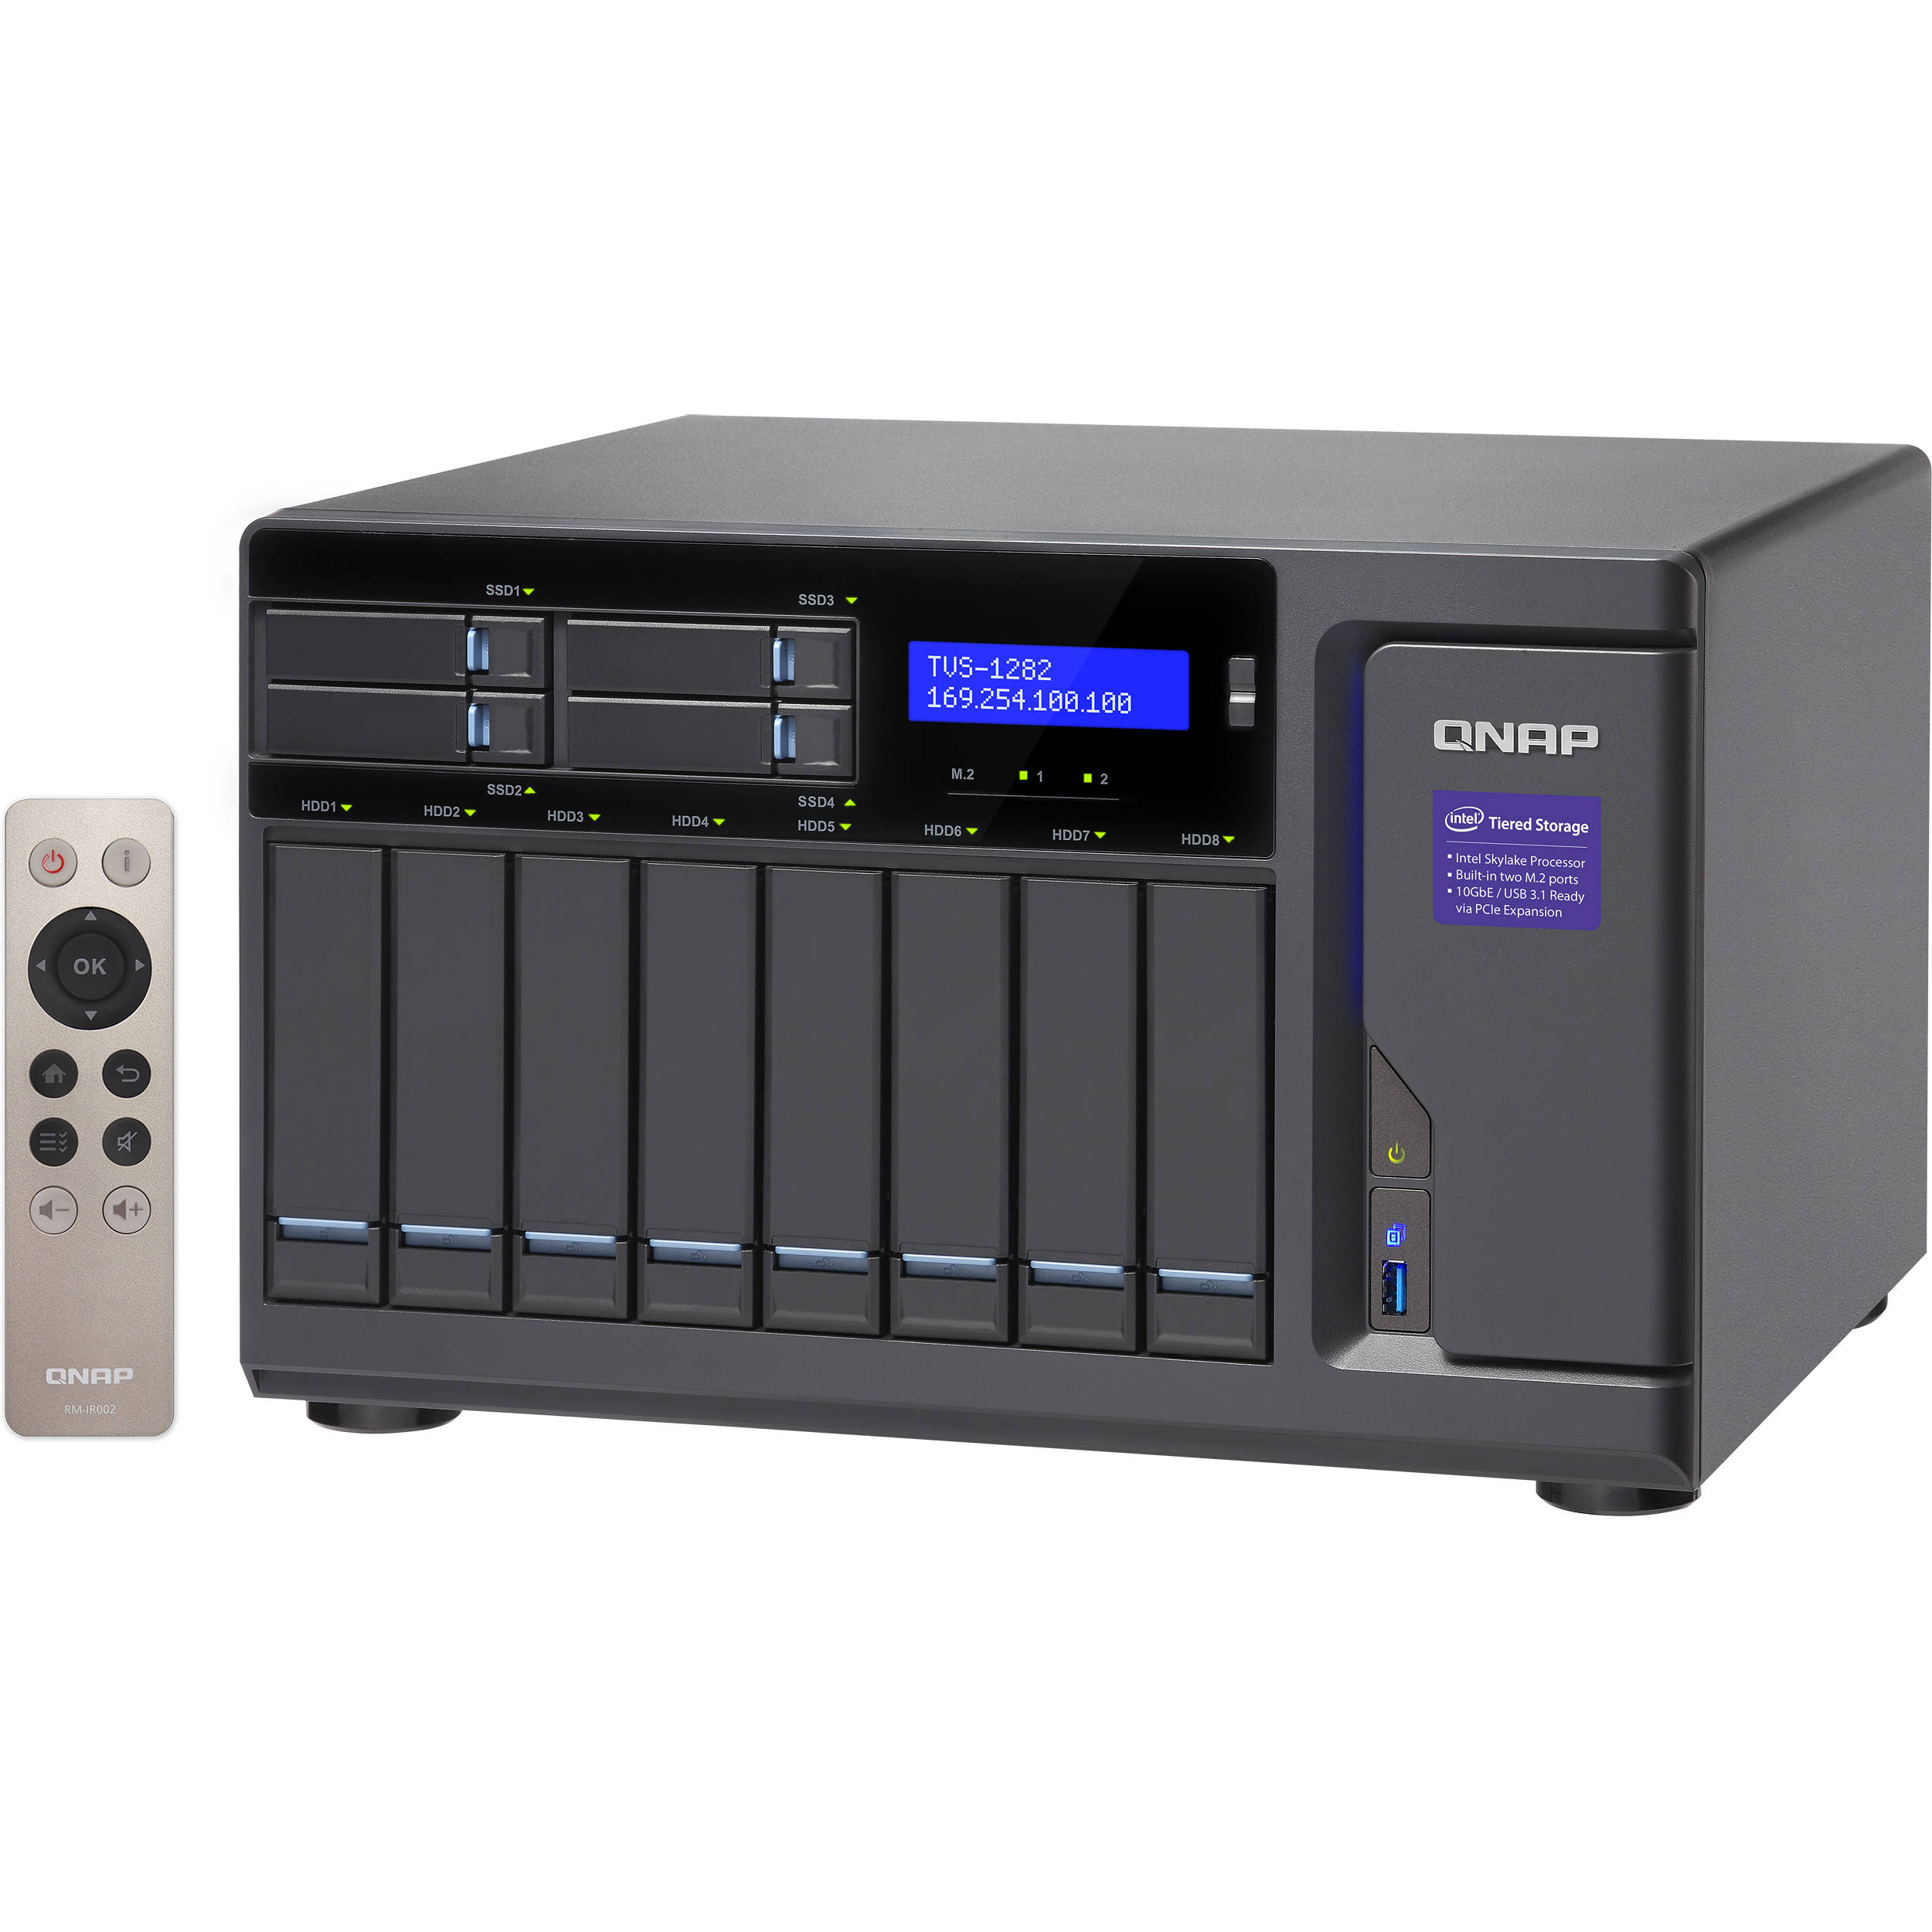 QNAP TVS-1282 12-Bay NAS Enclosure